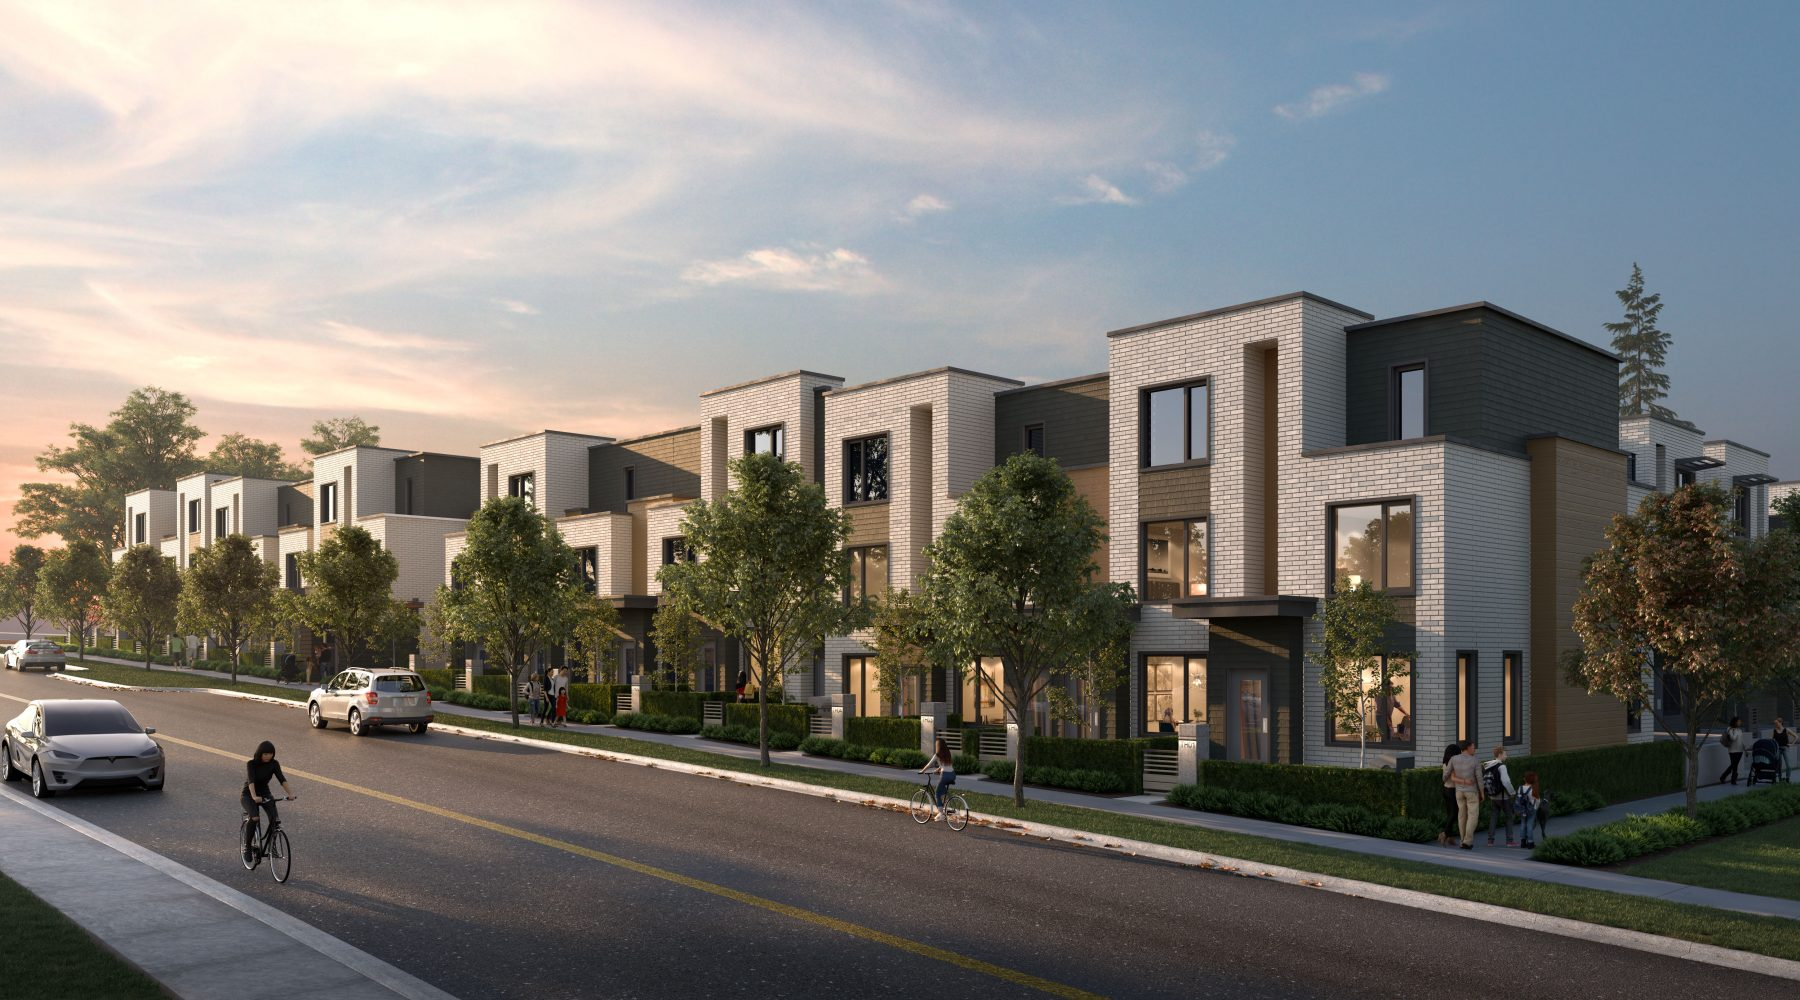 52 Larger-Than-Life Passive House Townhomes in West Coquitlam.